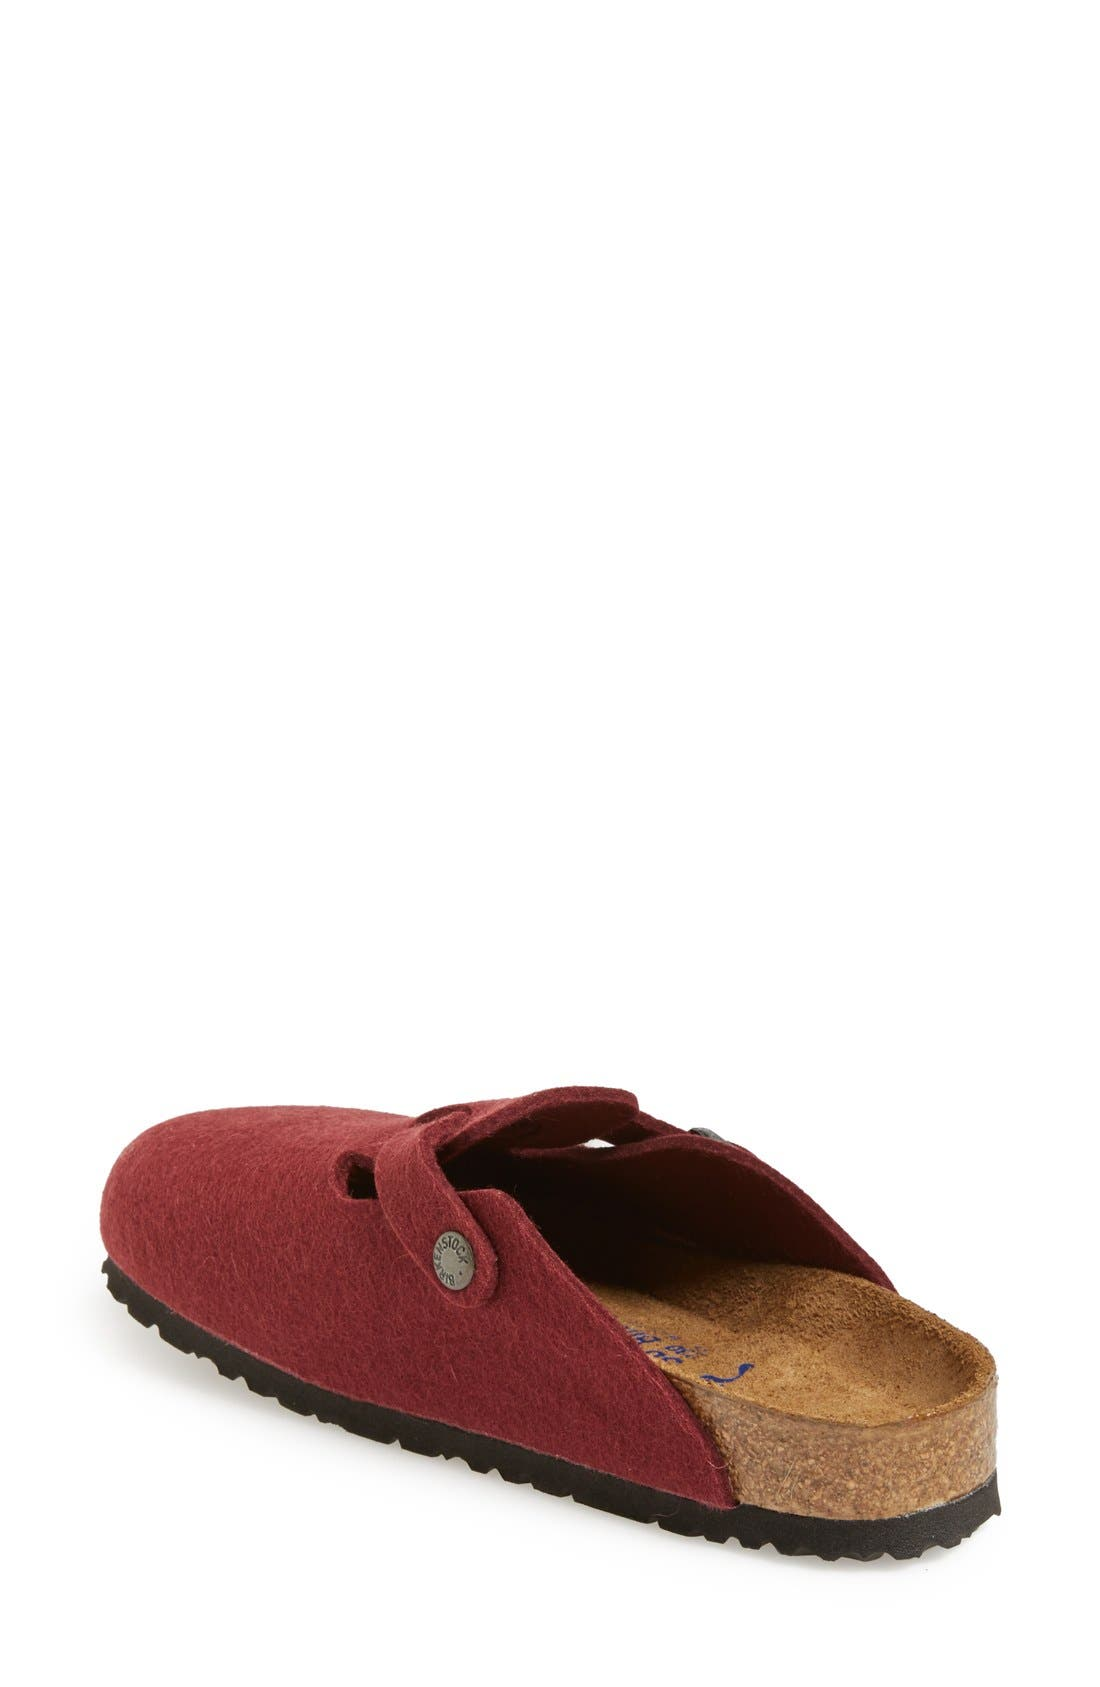 'Boston' Classic Oiled Leather Clog,                             Alternate thumbnail 35, color,